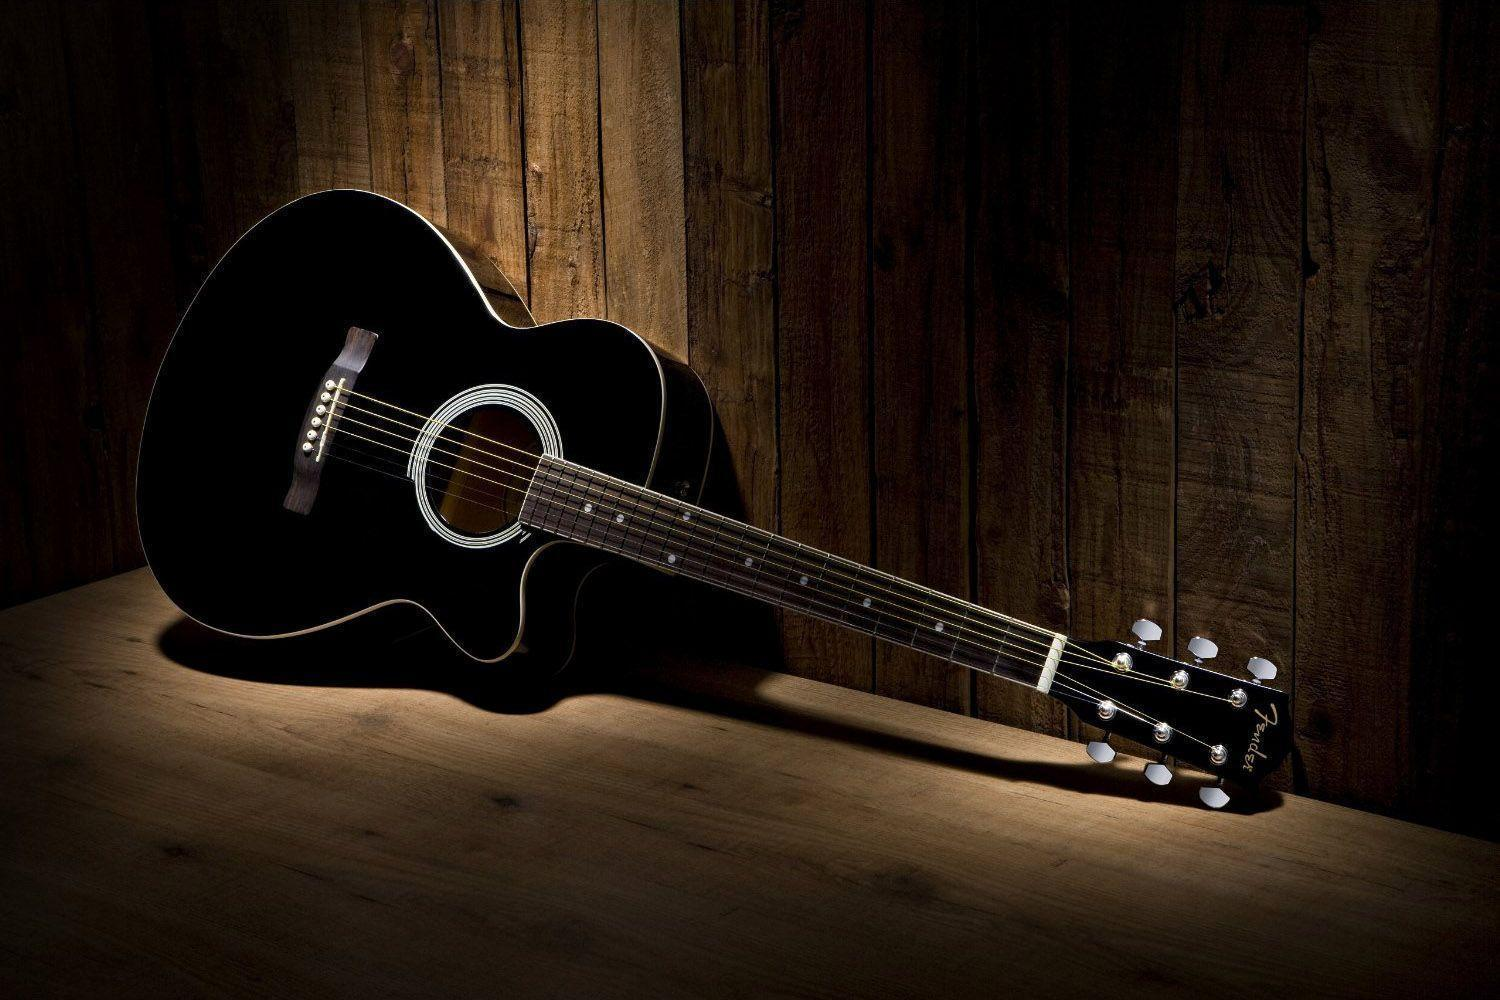 Wallpaper Klasik Keren Acoustic Guitar Wallpapers Wallpaper Cave